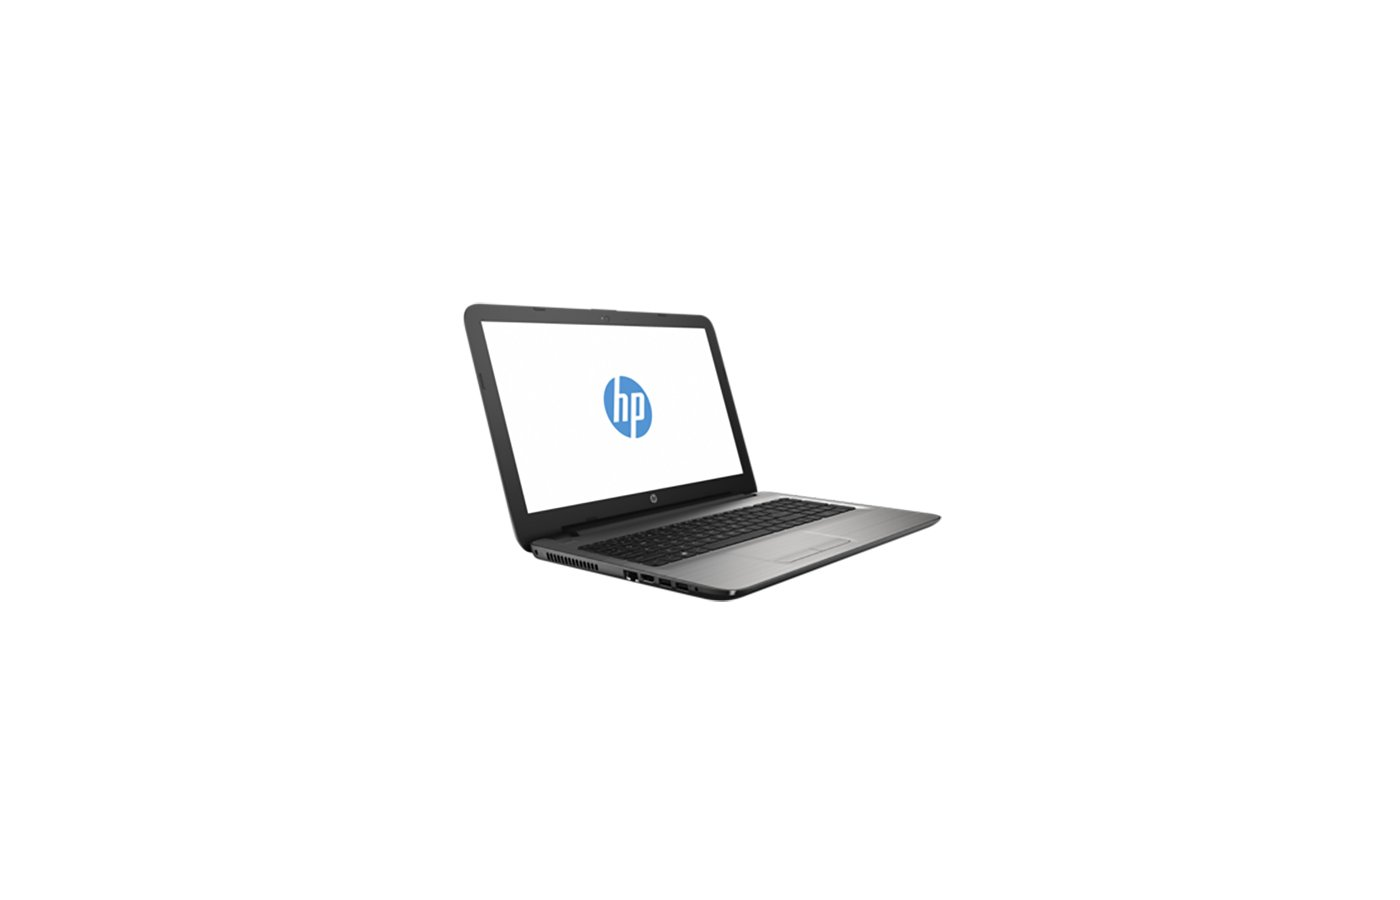 Ноутбук HP 15-ba040UR /X5C18EA/ AMD E2 7110/4Gb/500Gb/15.6/WiFi/Win10 (Silver)